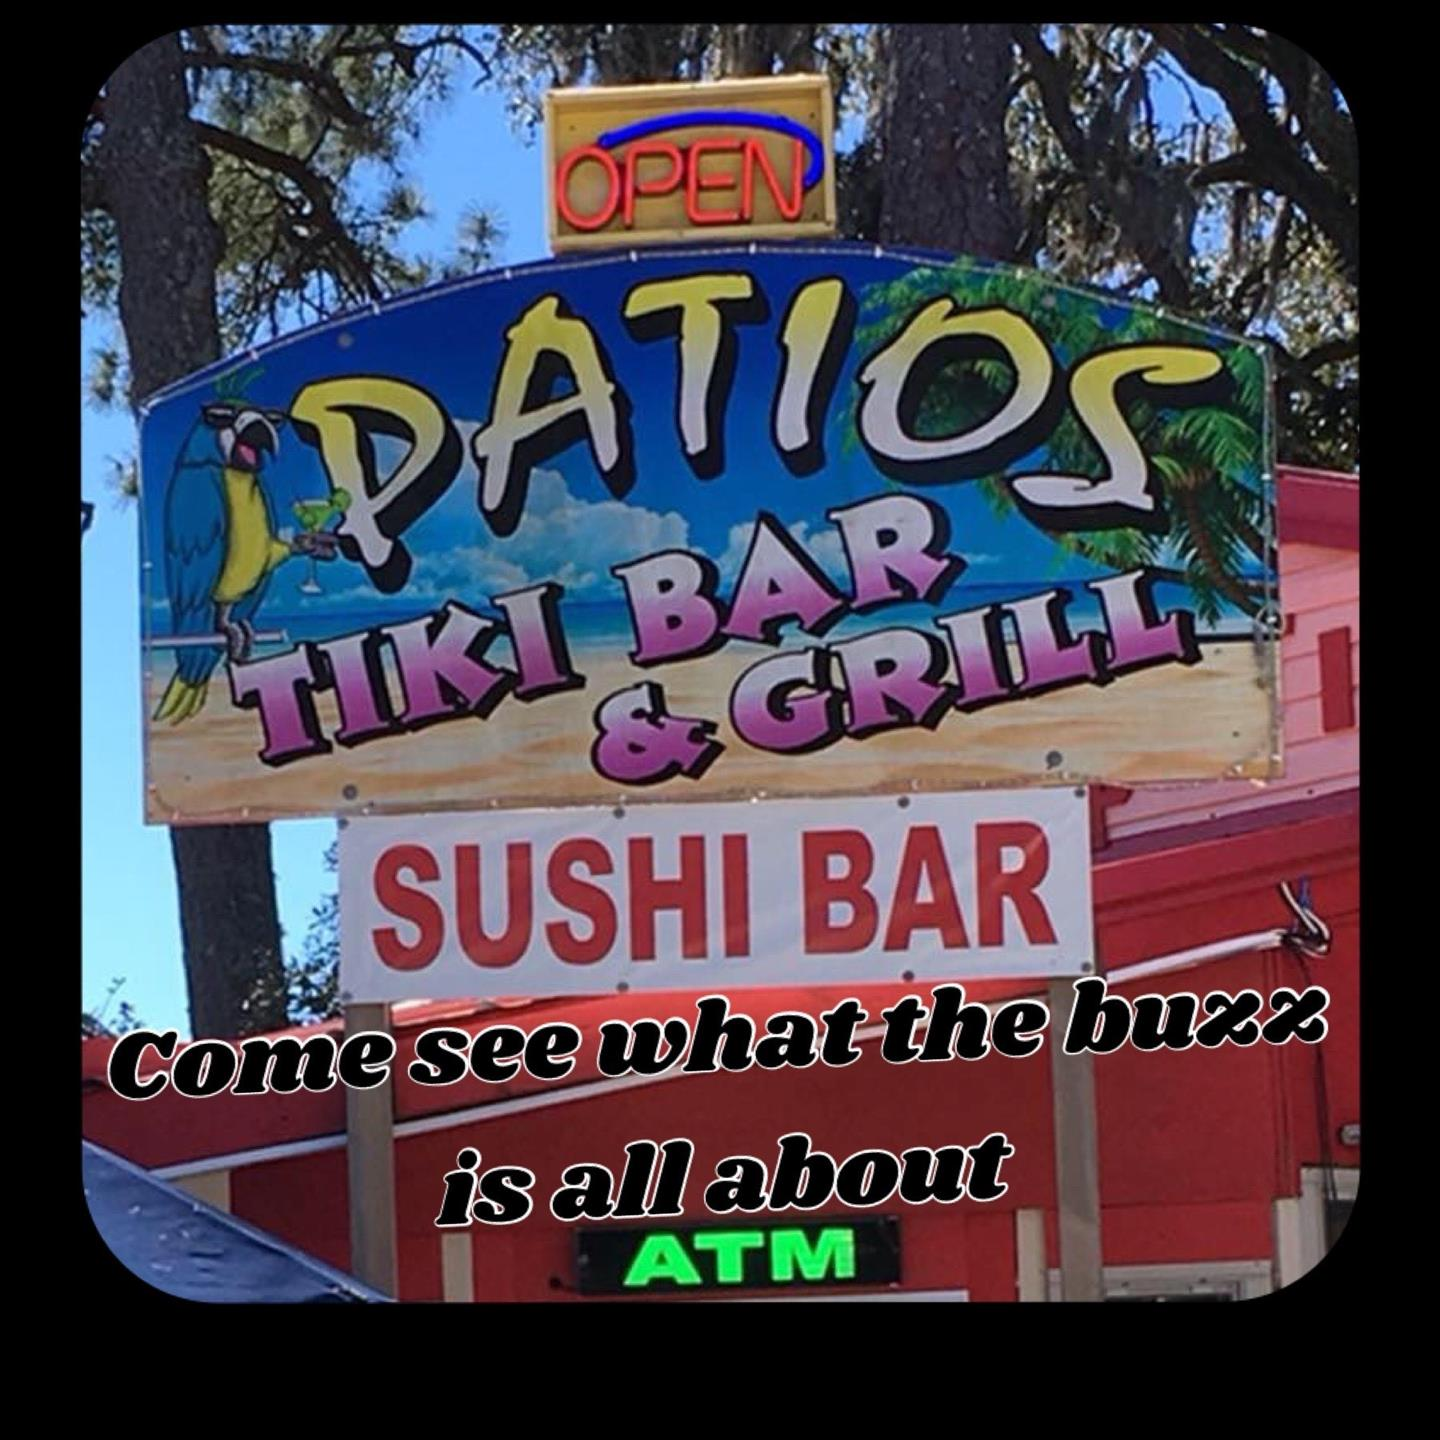 patios tiki bar and grill sign outside